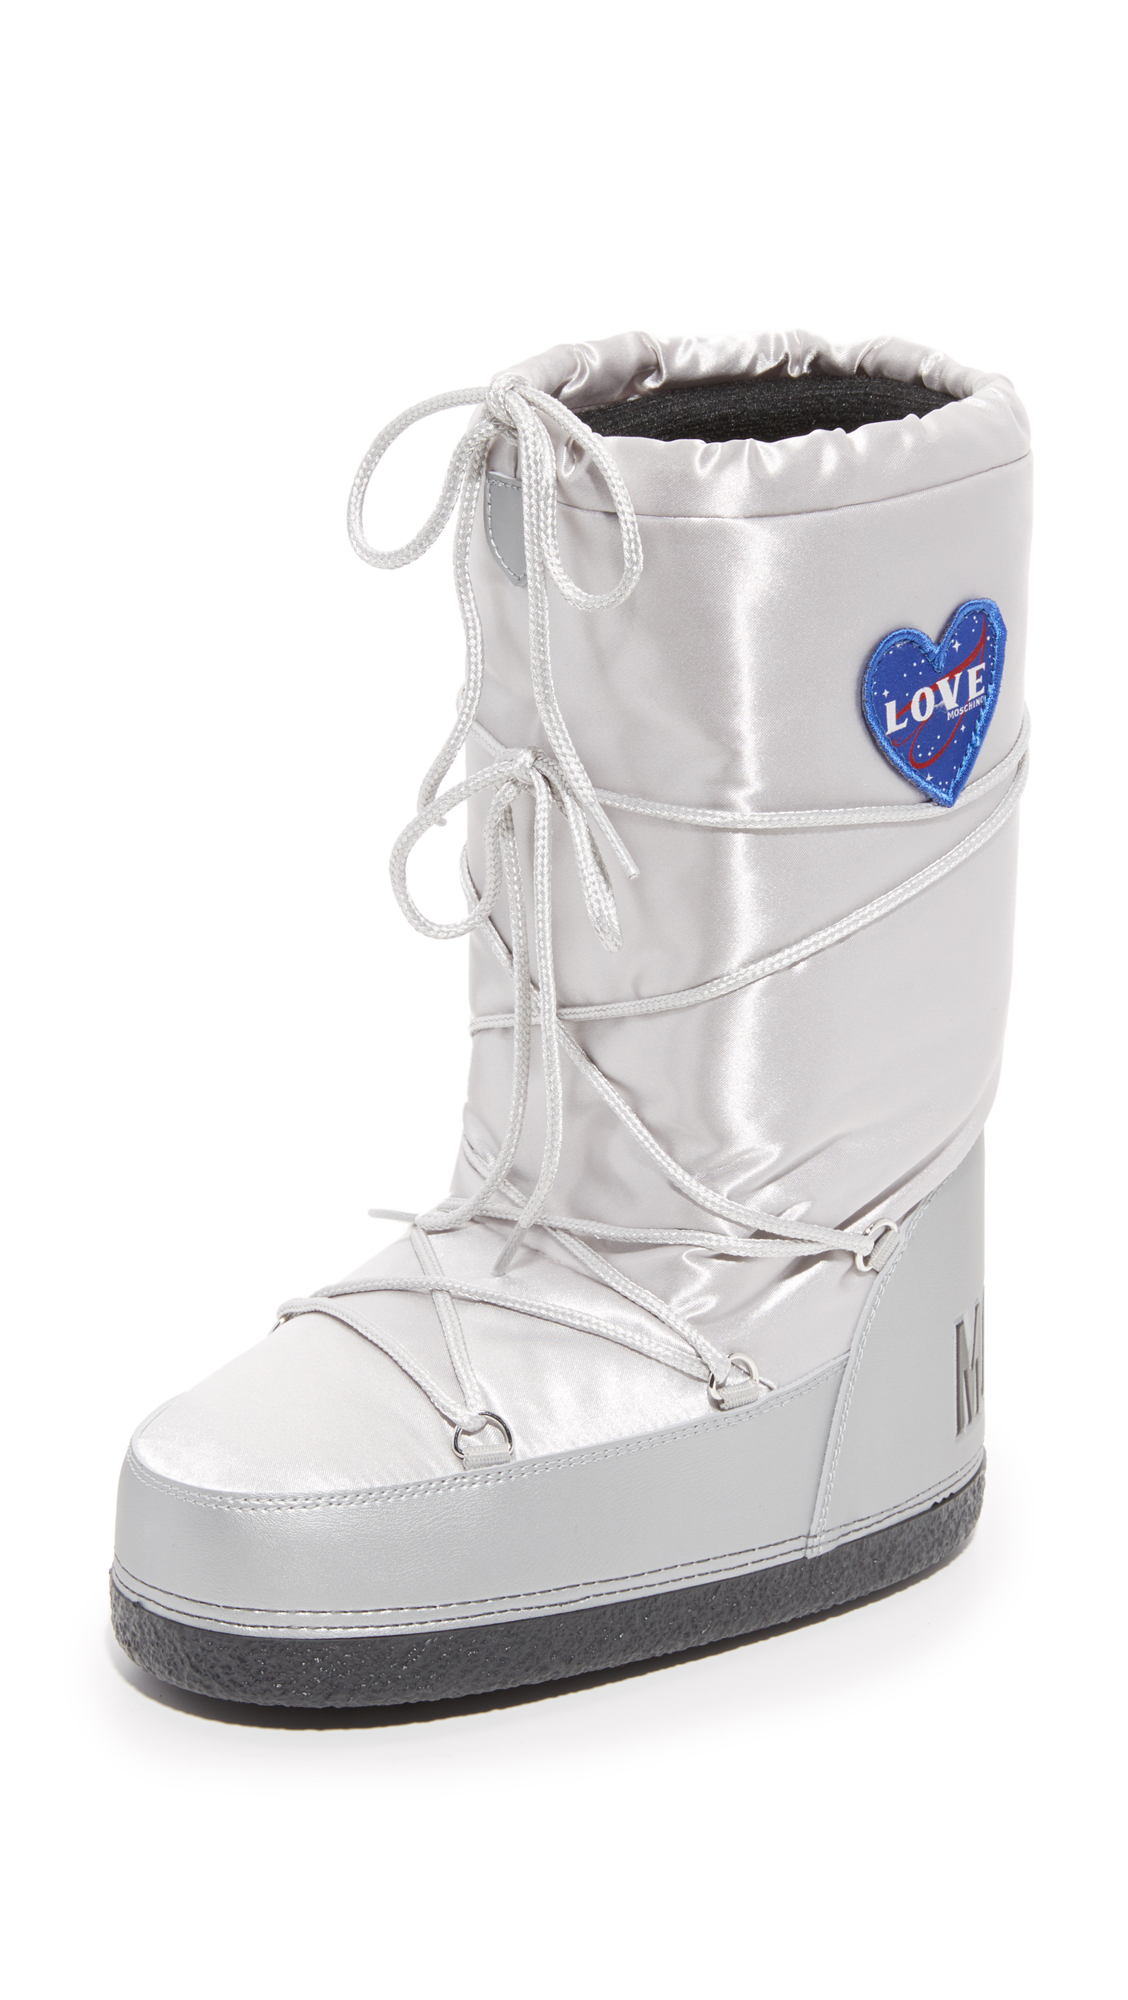 Moschino Moon Boots - Silver